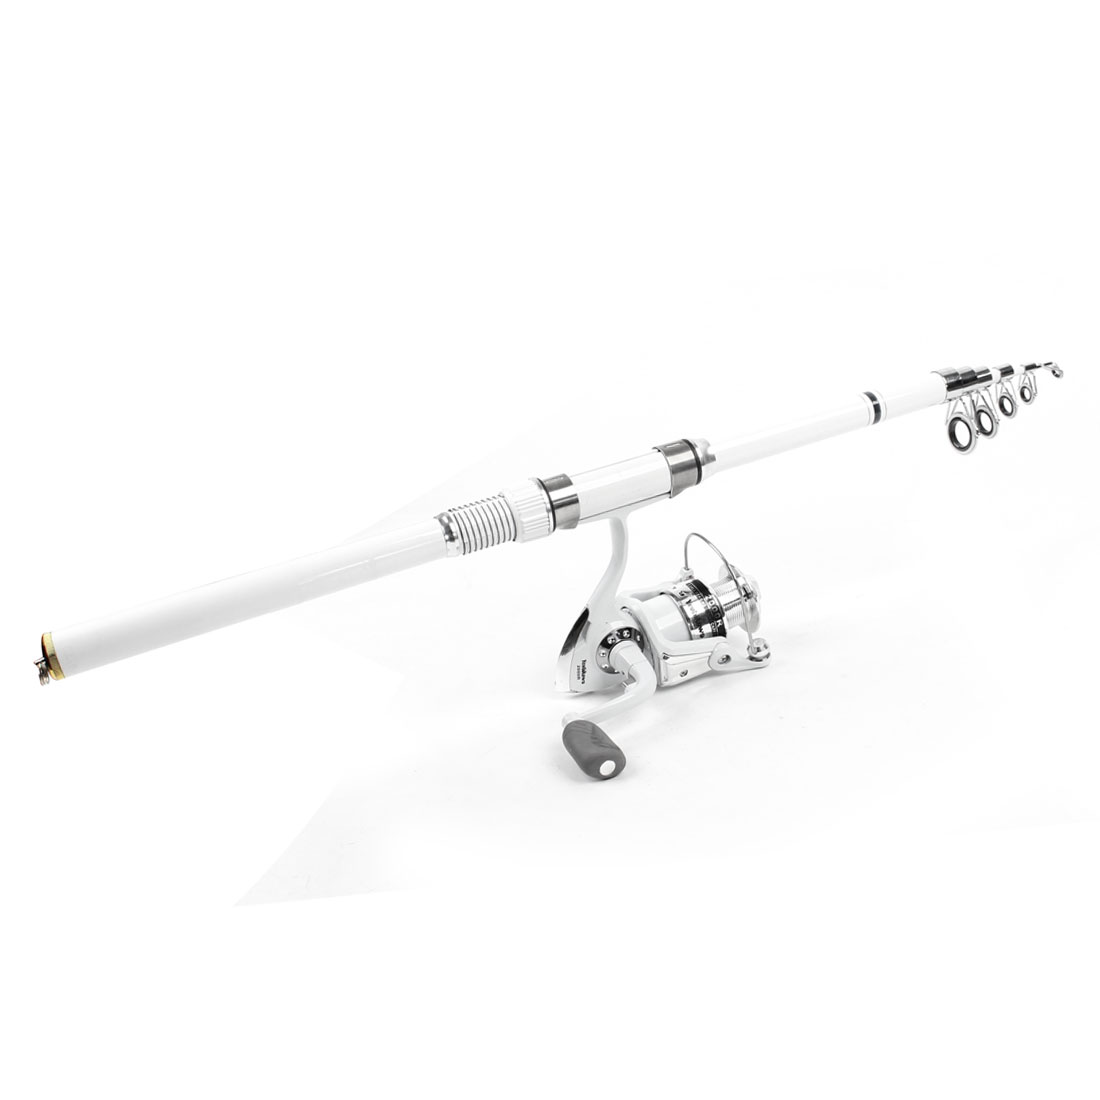 8 in 1 Fish Bobbers Fishooks Alert Bell 7.9 Ft Fishing Pole White Set